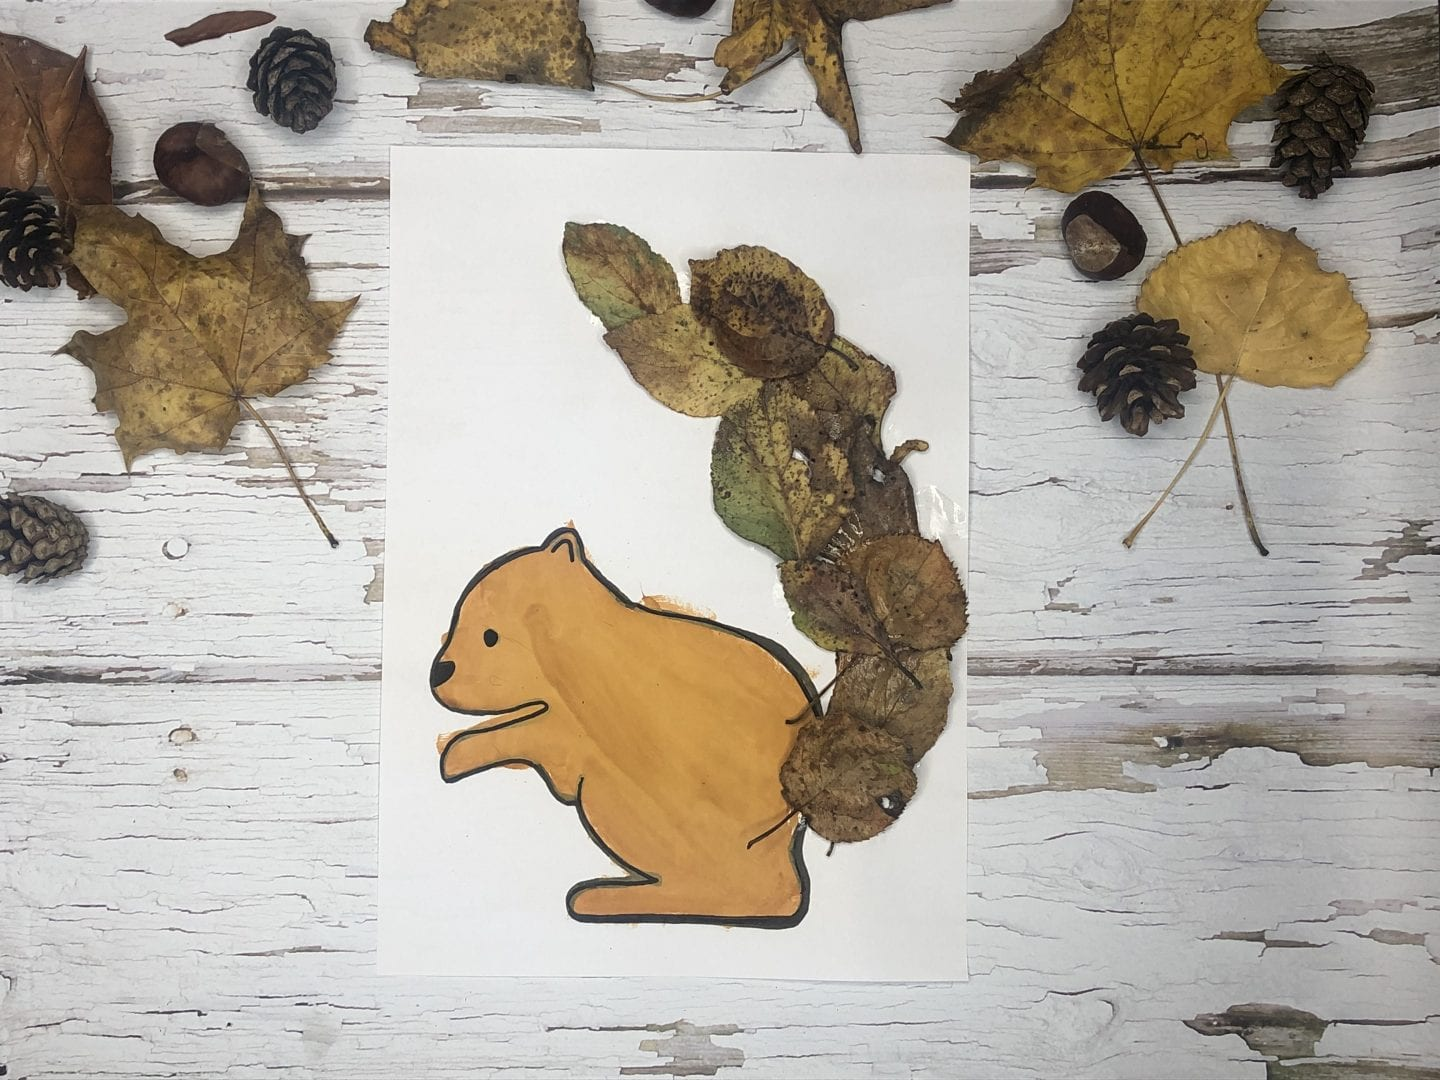 The finished squirrel leaf collage